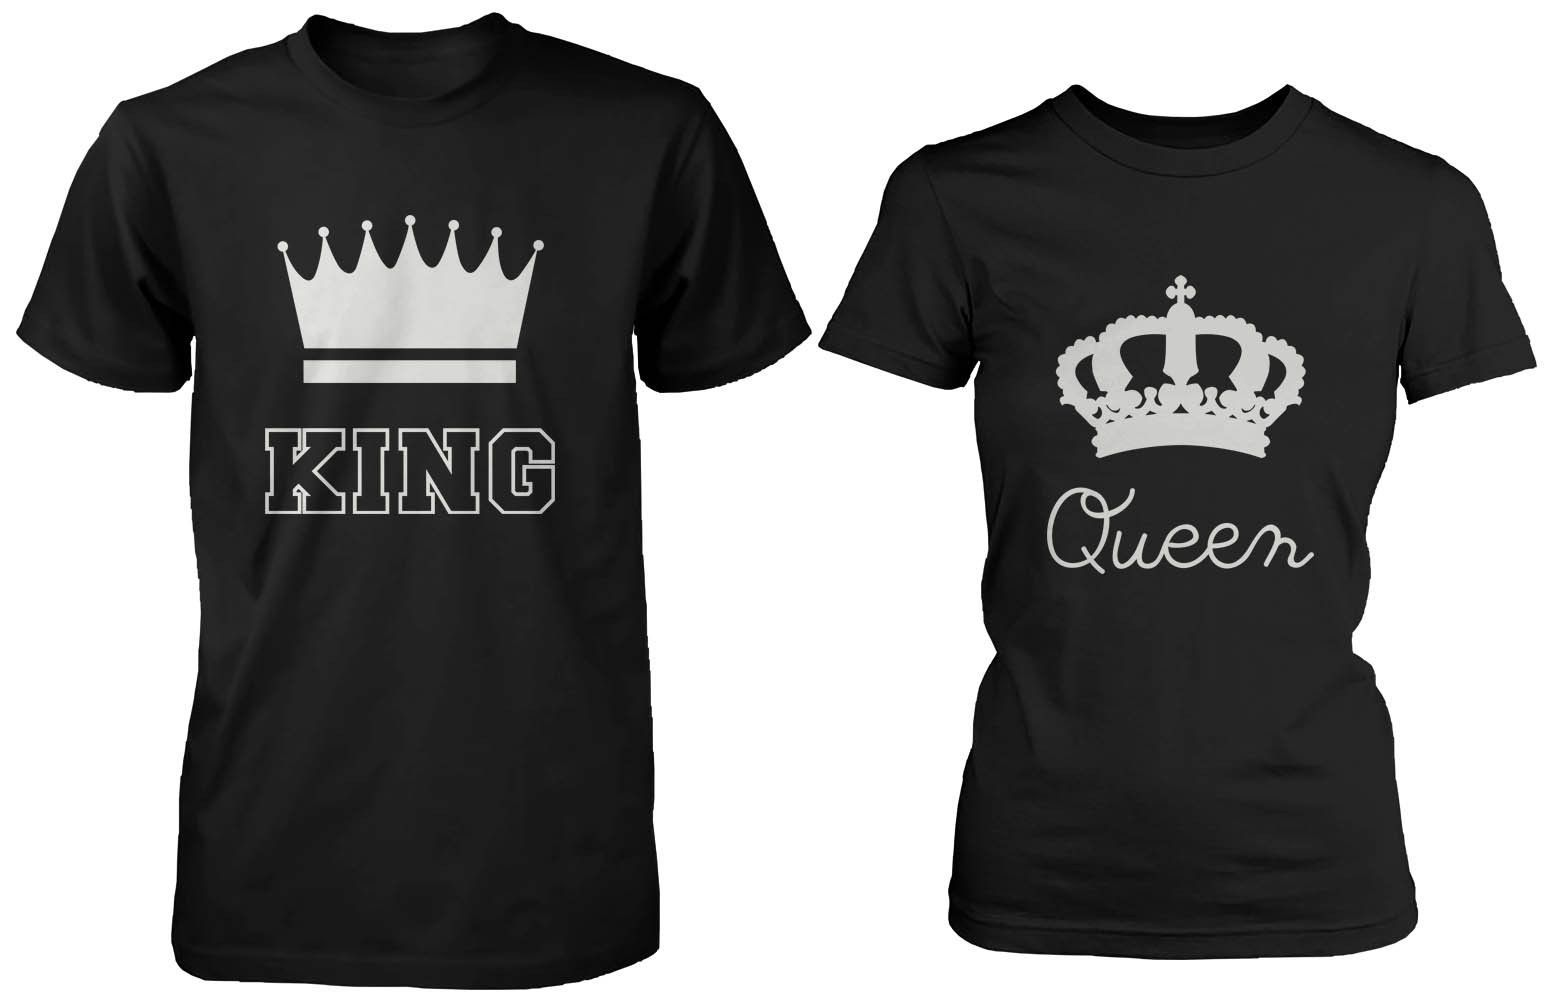 Cute Matching Couple Shirts King And Queen Black Cotton T